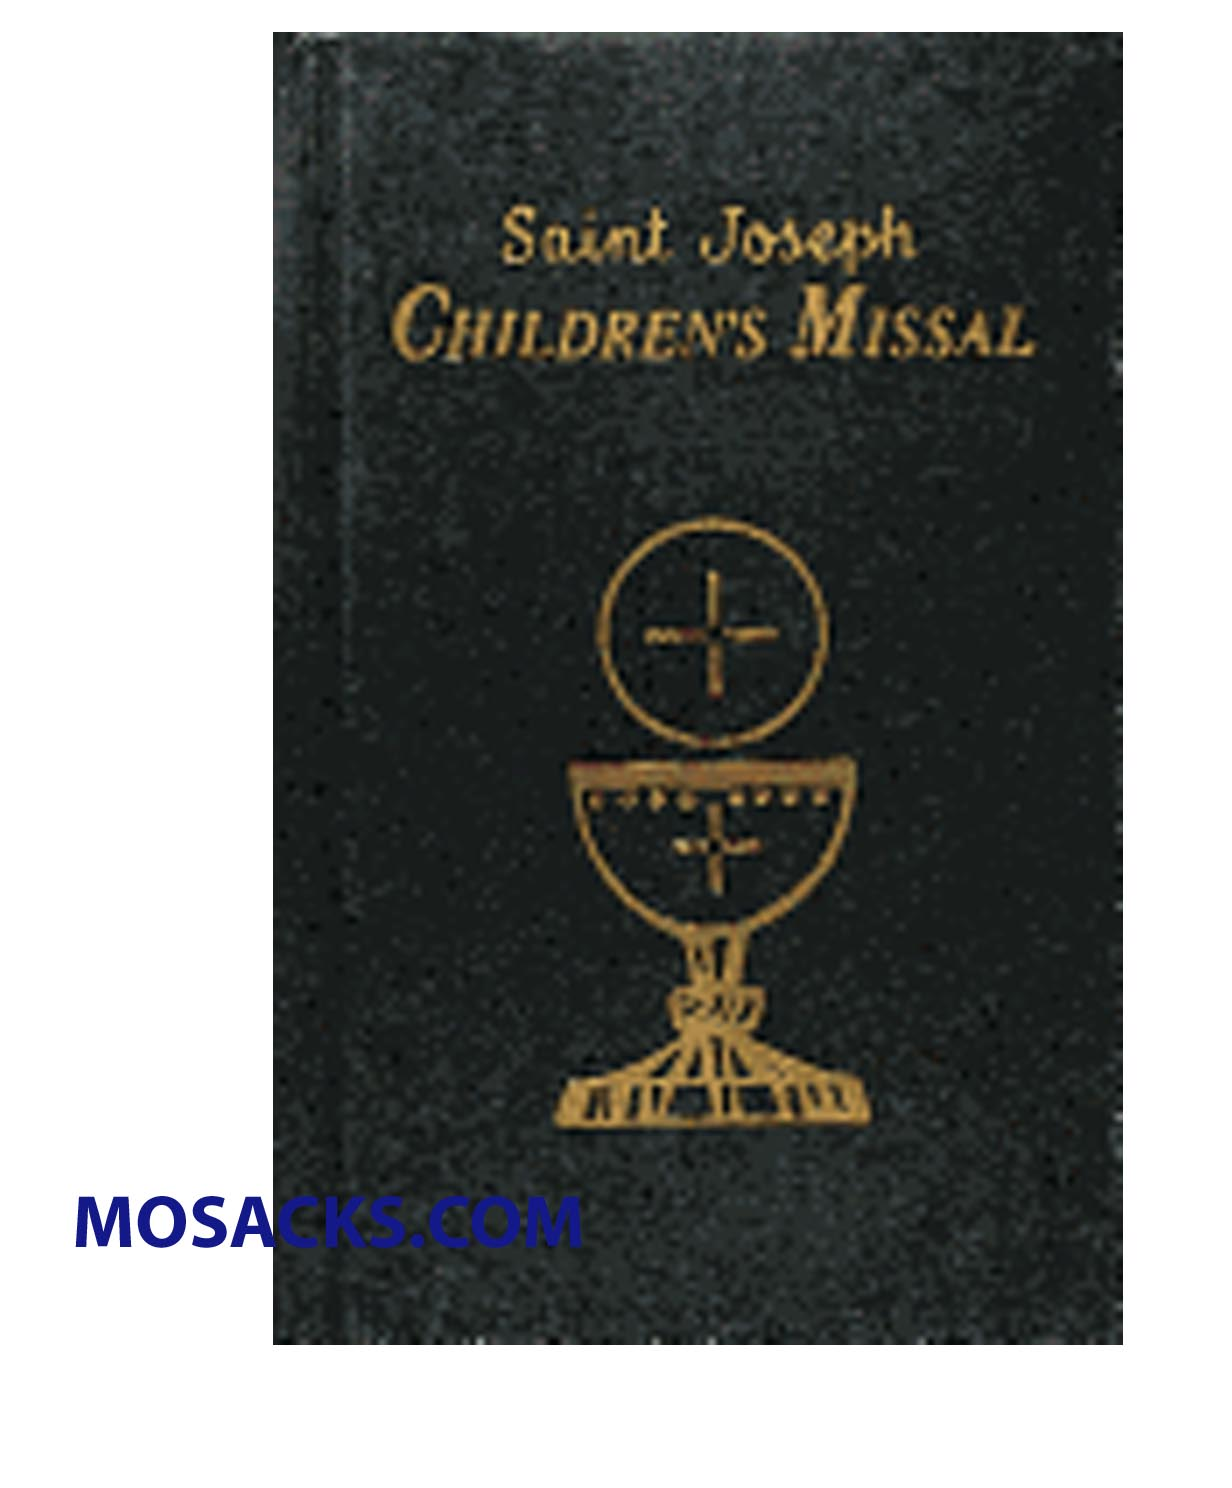 St. Joseph Children's Missal 806/67-B with Black Cover from Catholic Book Publishing 60-9780899428062